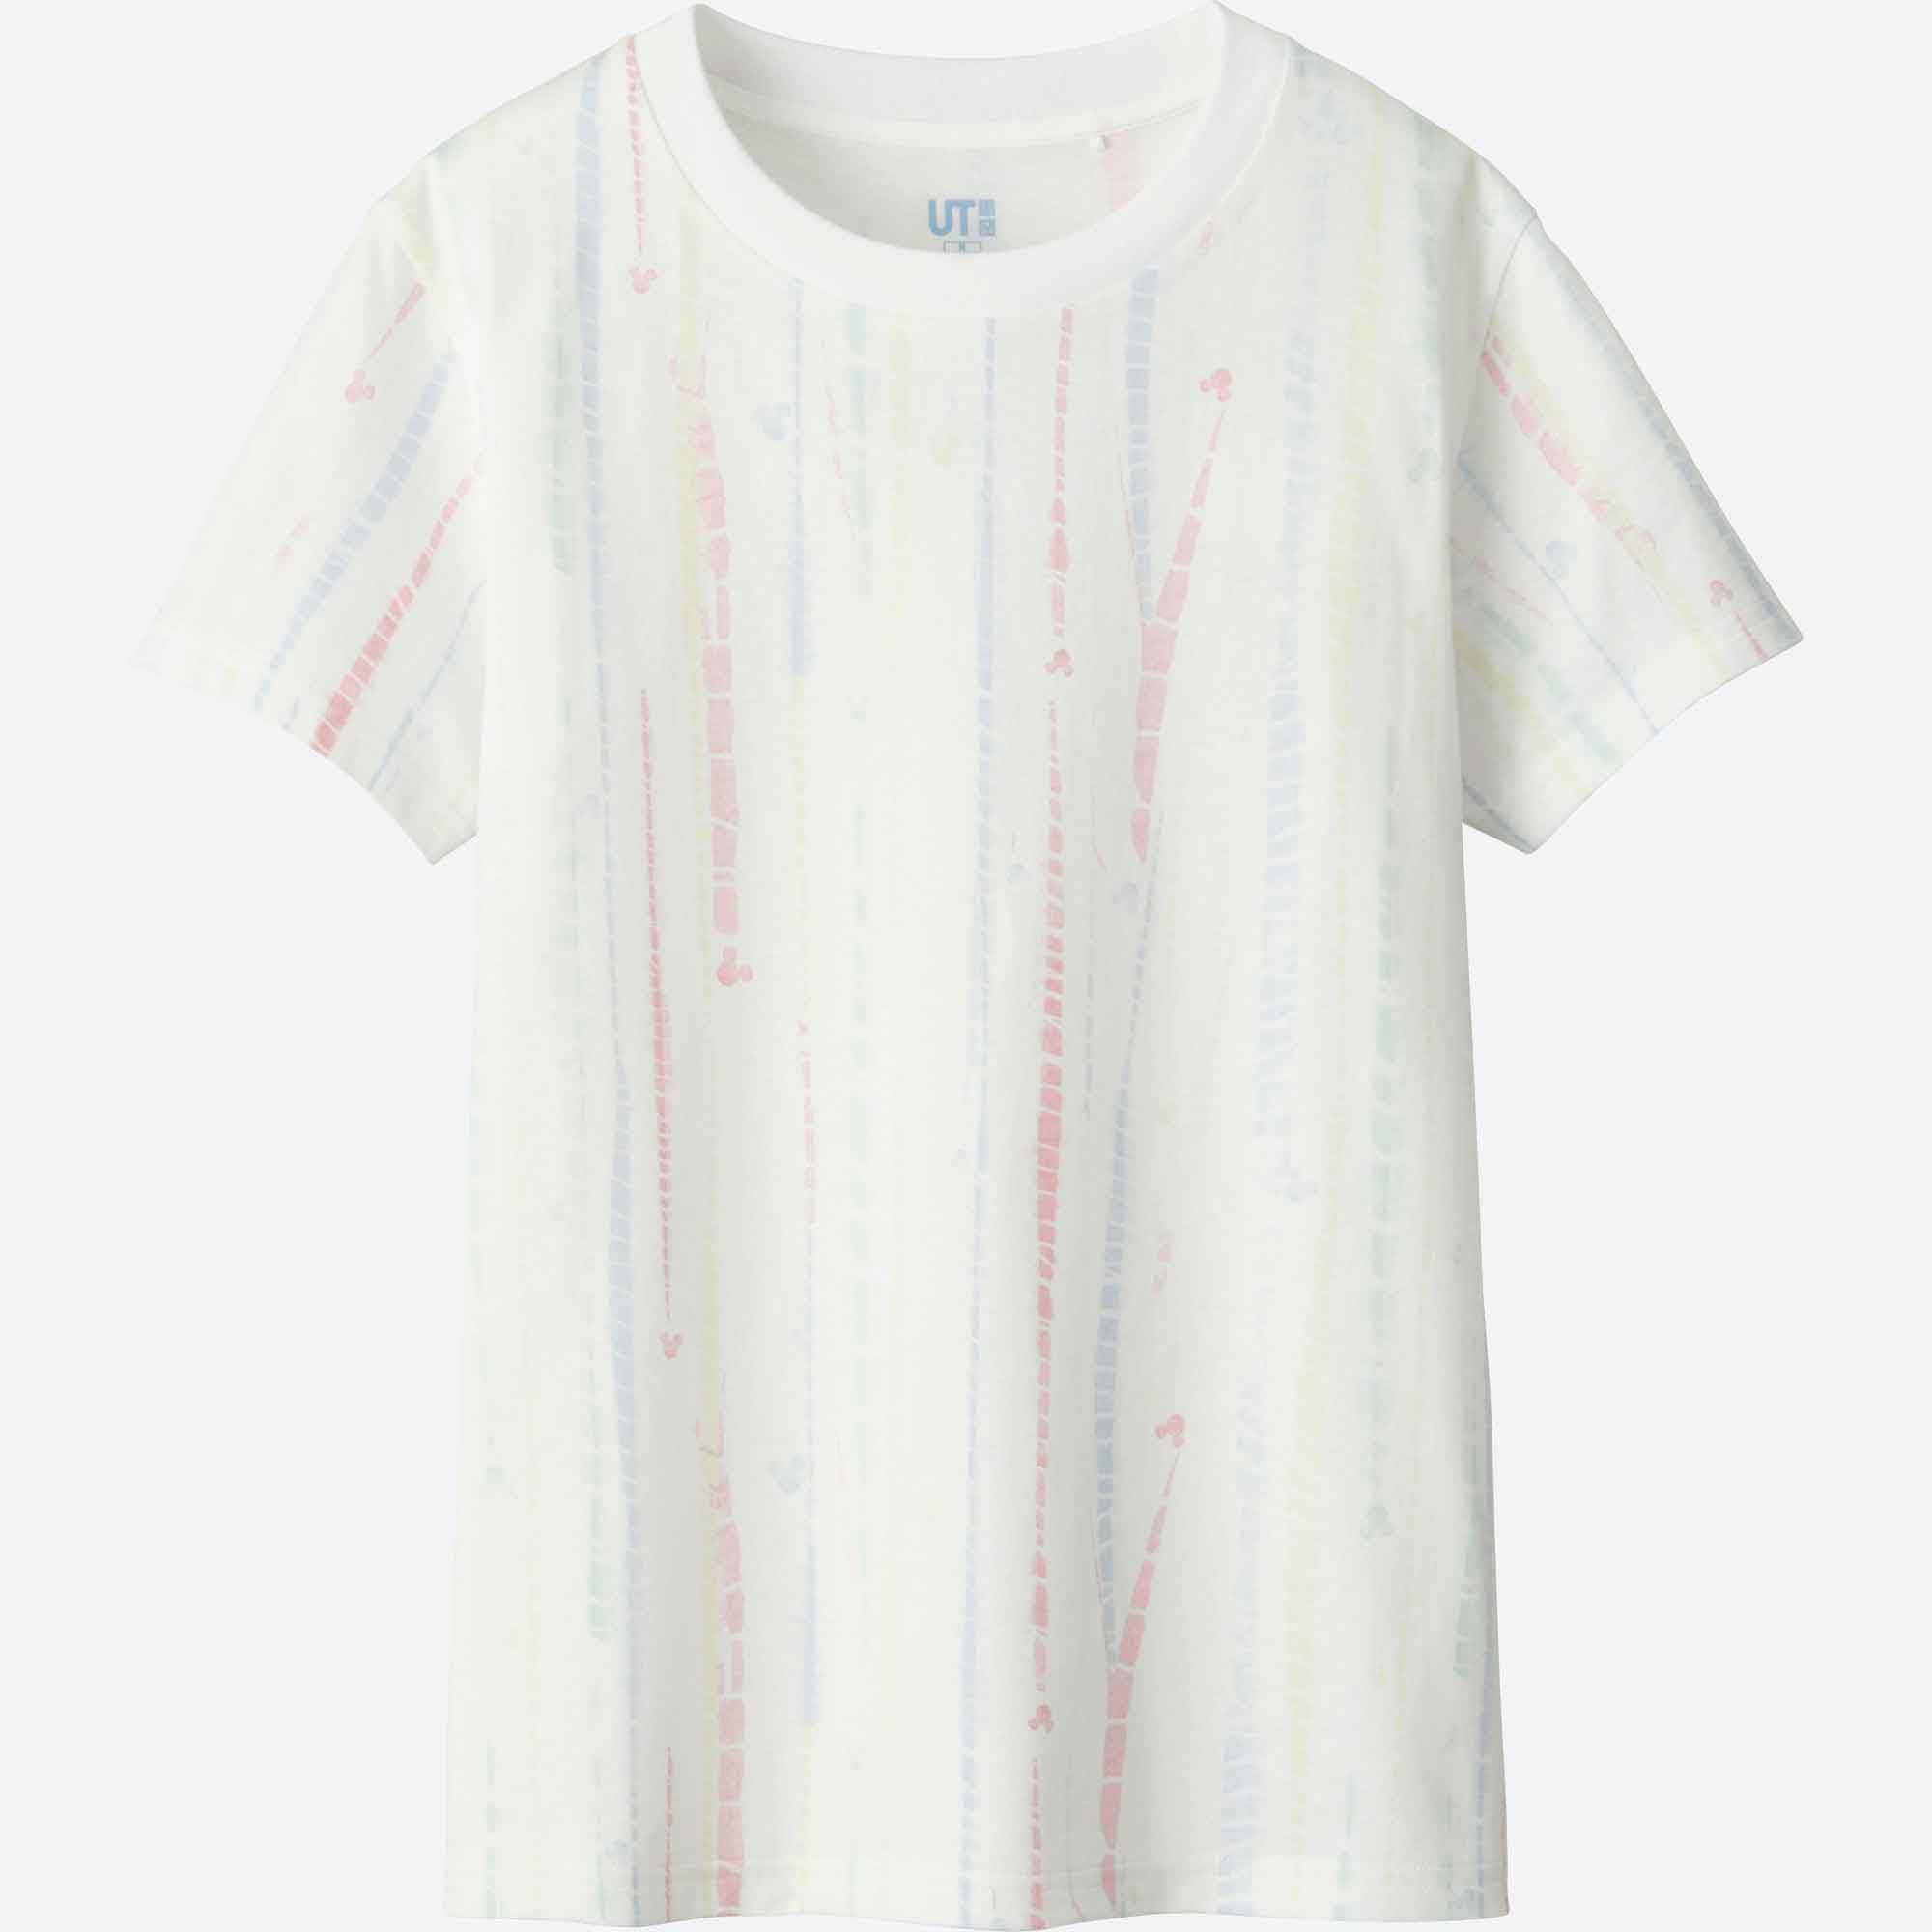 59f799f1878174 The UNIQLO UT Graphic Tee Collection